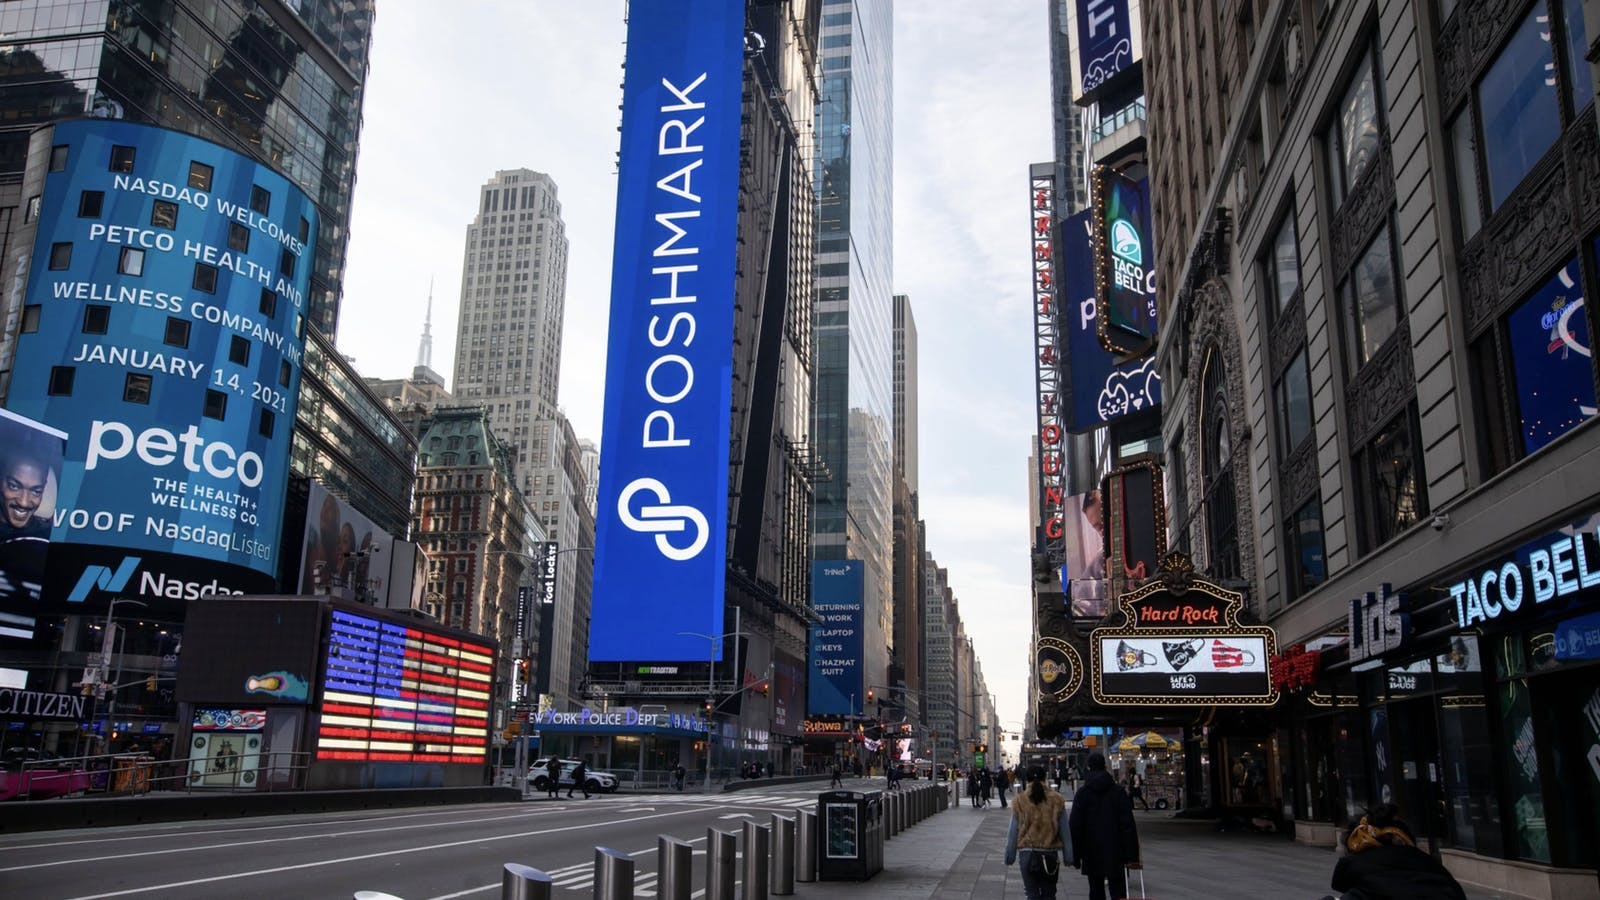 Poshmark material at the Nasdaq in New York the day of its IPO last month. Photo by Bloomberg